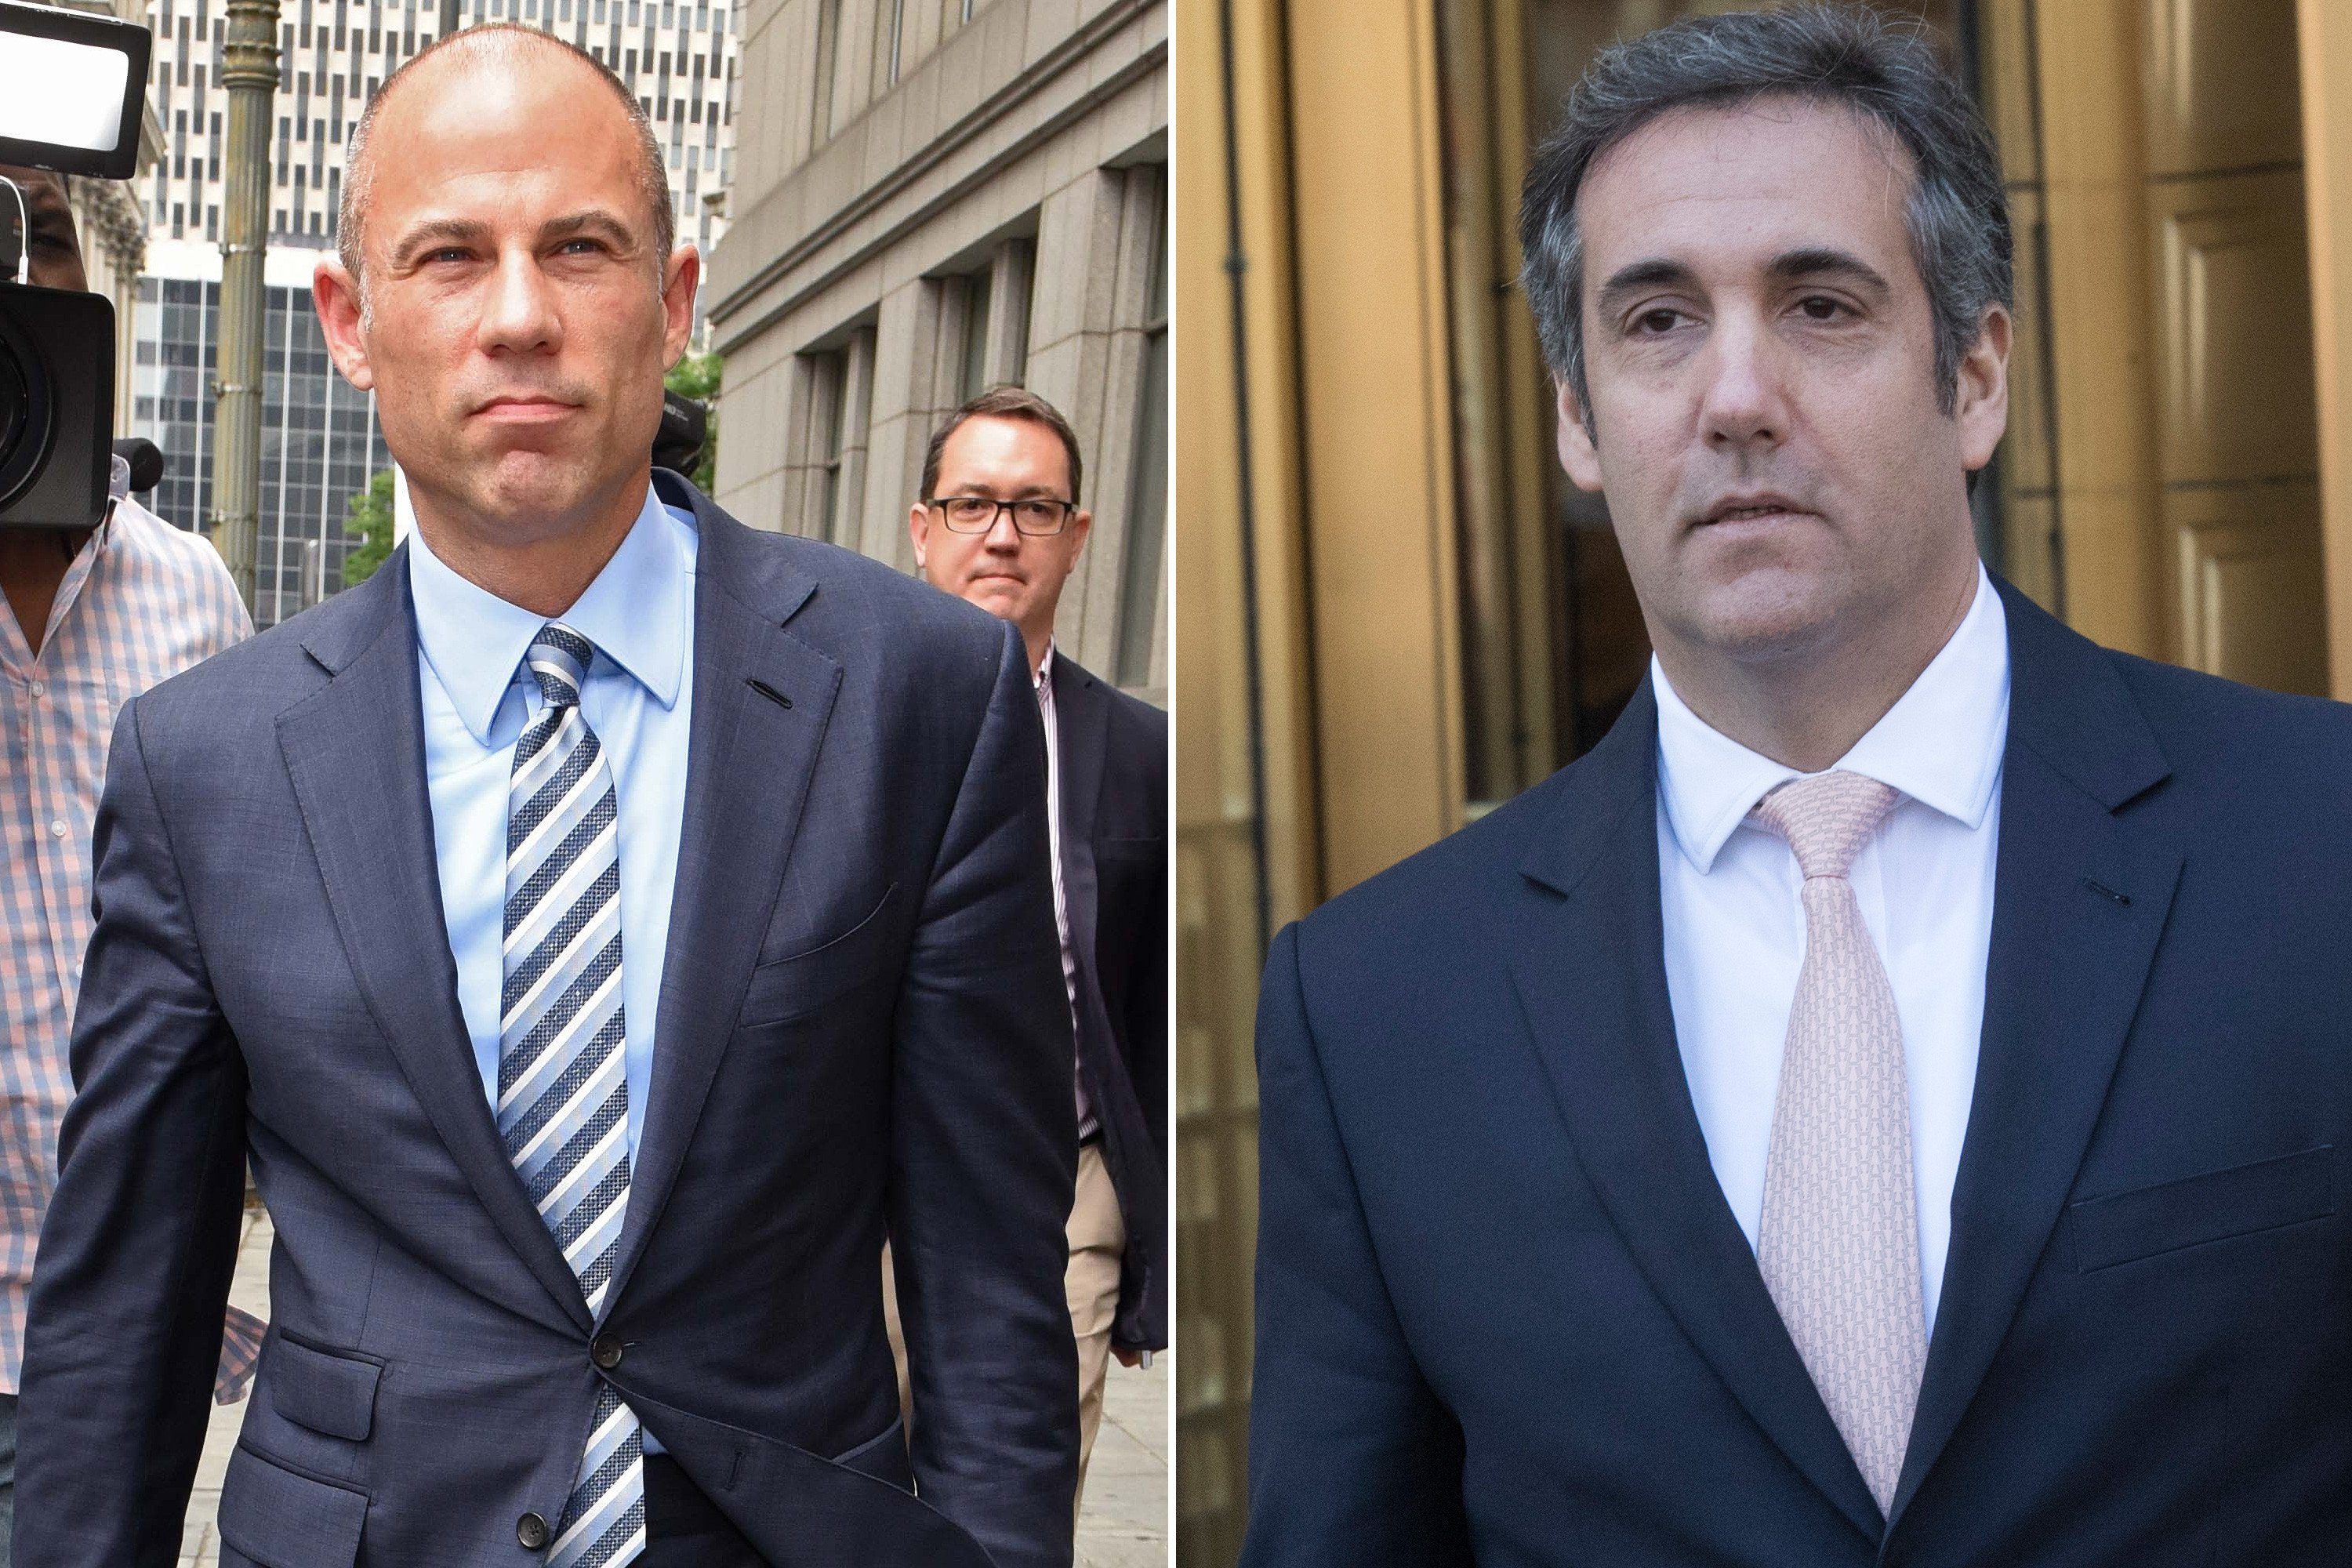 Michael Cohen wants judge to place gag order on Stormy Daniels' lawyer